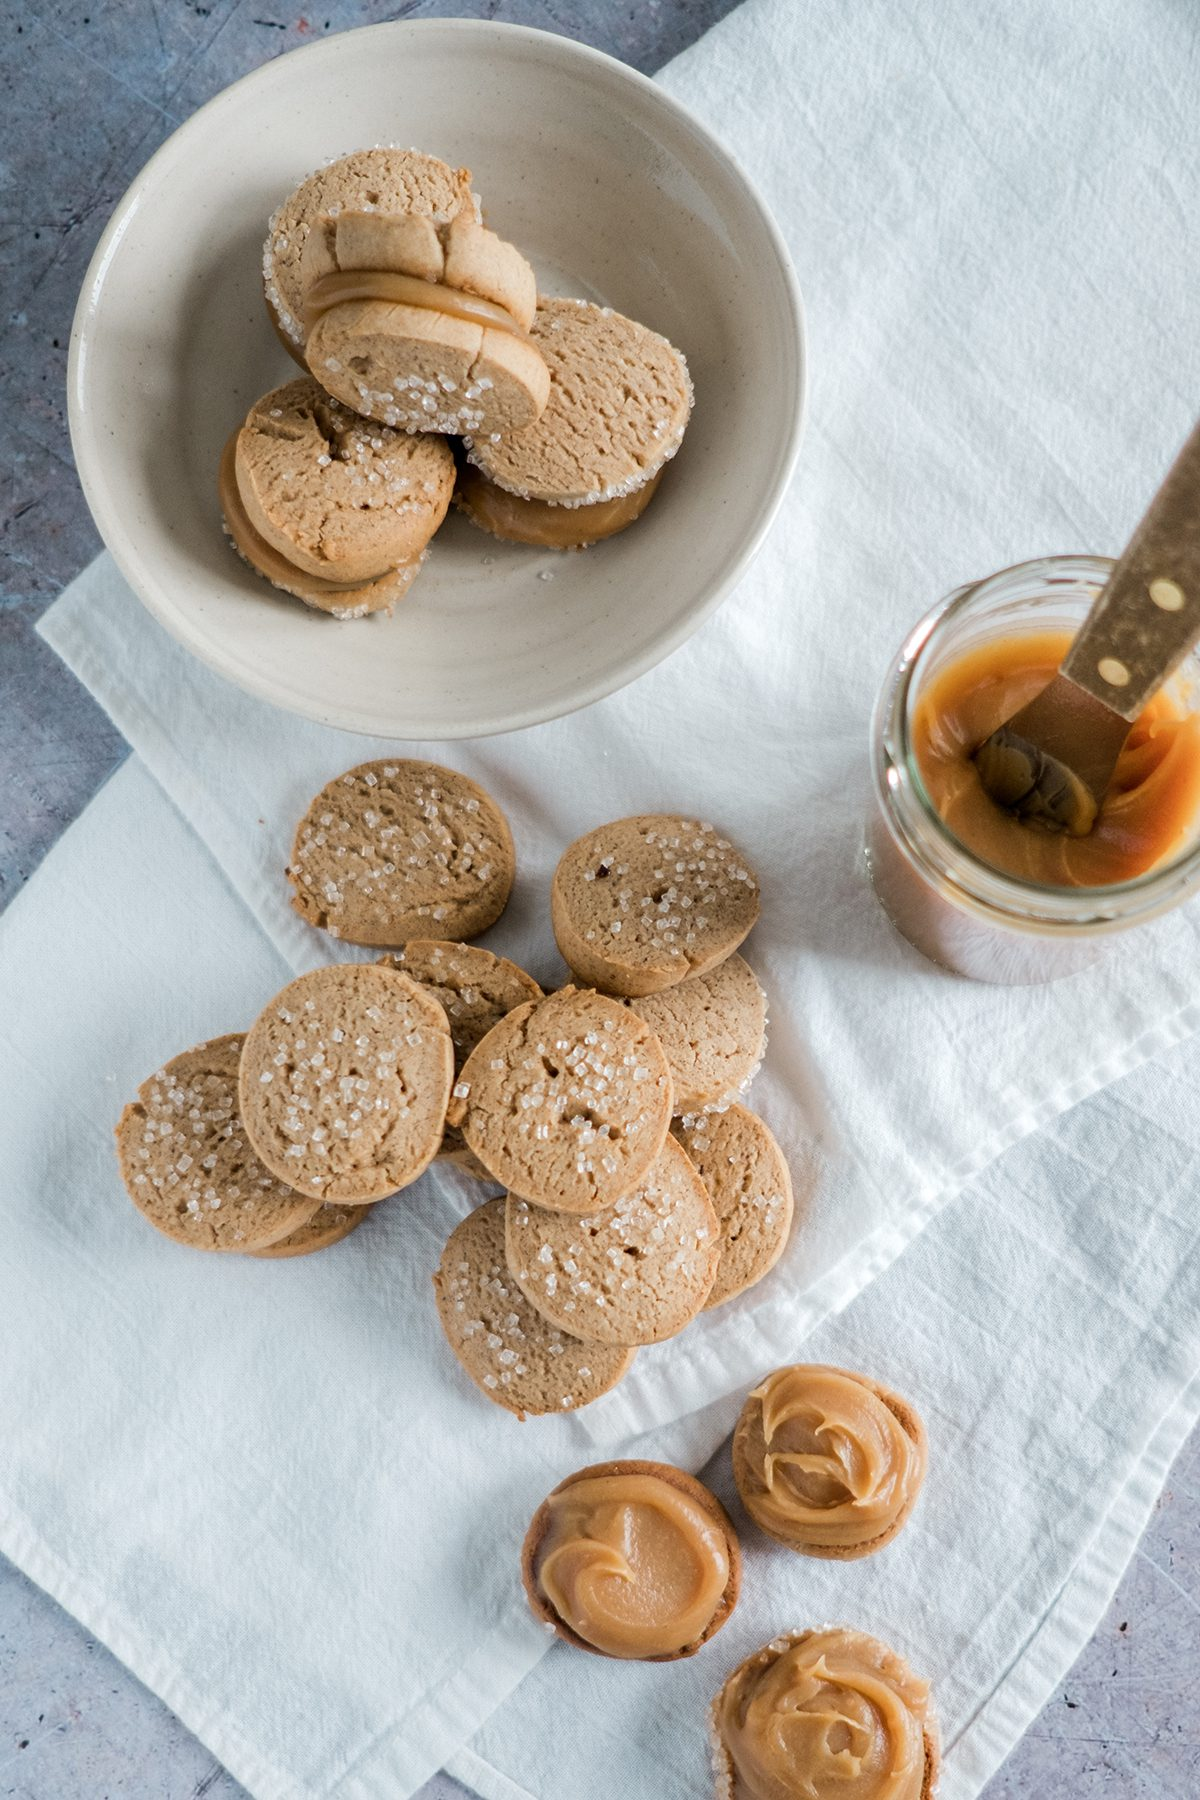 Speculoos and Caramel Sandwich Cookies